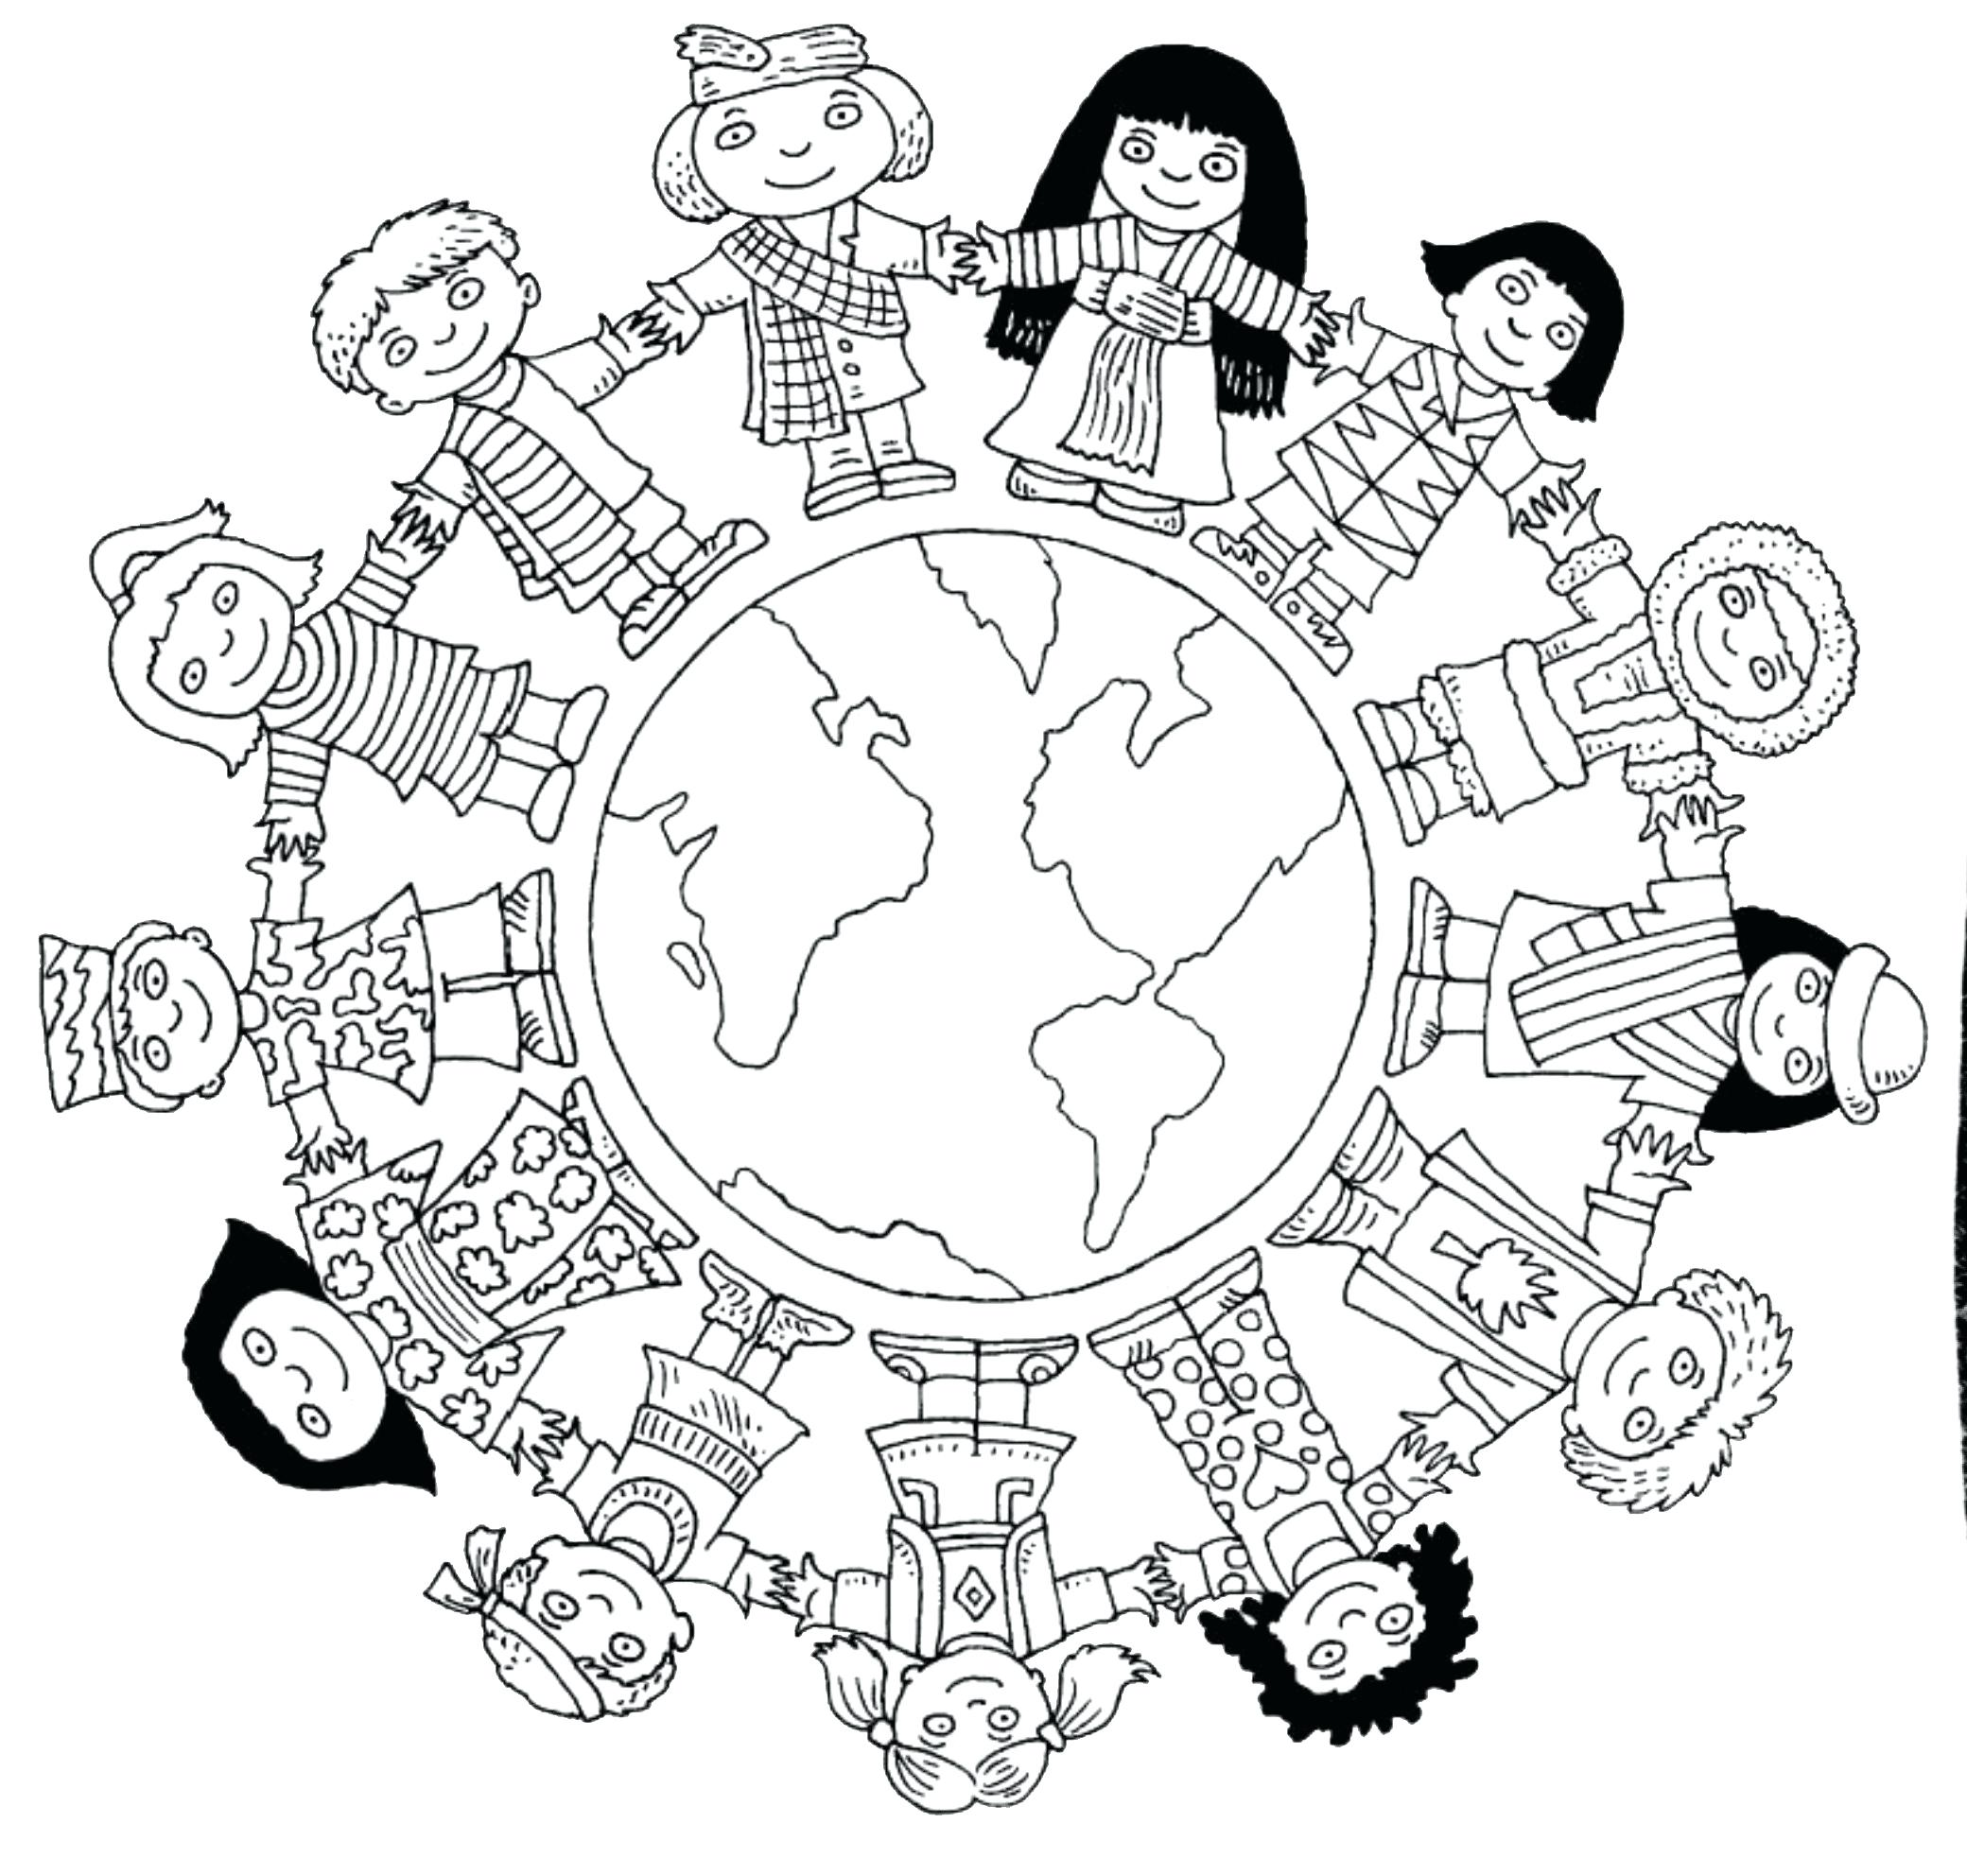 2080x1984 Liberal Children Around The World Coloring Page Chinese